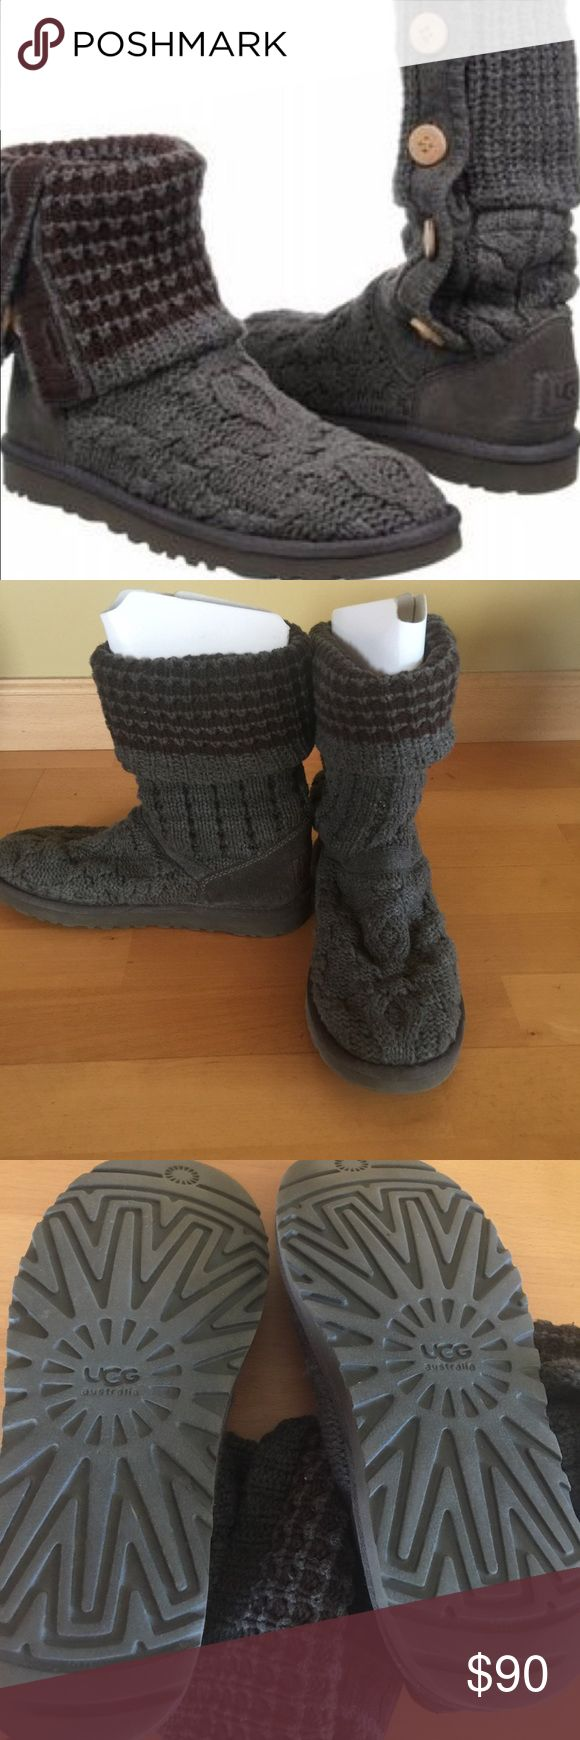 Original UGG Leland Sweater Boot Size 8 This gray and brown UGG boots have been previously worn but kept in excellent condition.   These boots are made in a sweater type style from the front and lined with sheepskin fur inside at the footbed only.   Boots can be rolled up see pic #1.   All four wooden buttons remain intact on both boots.  Boots are a tad dirty from the back heel and the heels are not even due to wear.   Please no trades but I do accept reasonable offers.   No low balling…